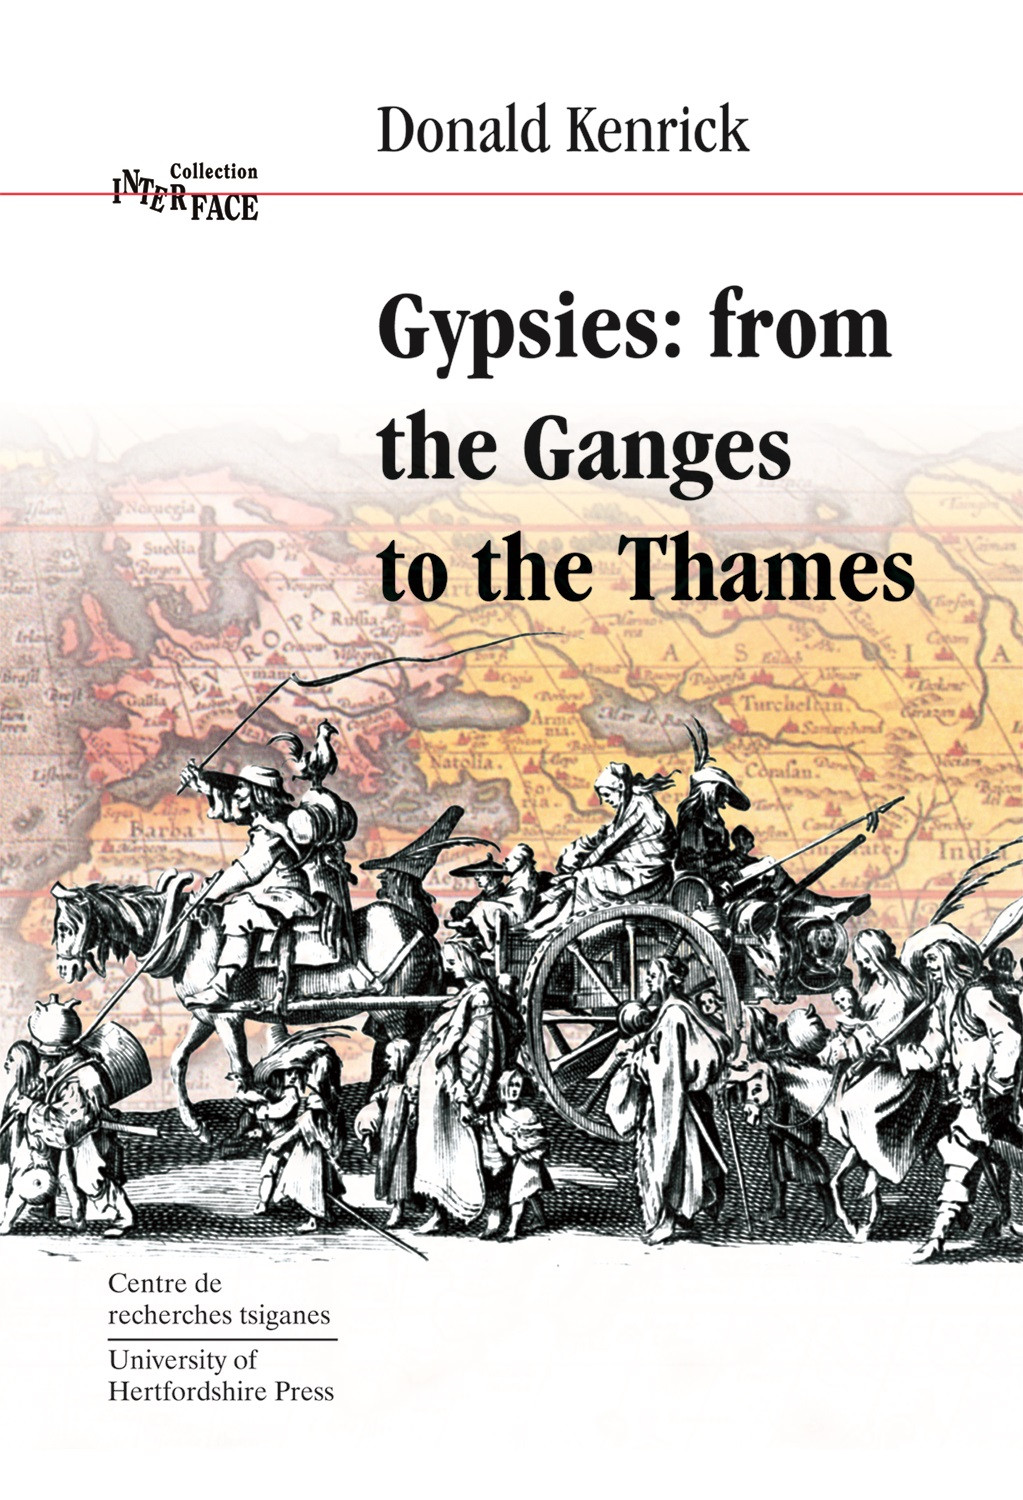 Gypsies: from the Ganges to the Thames